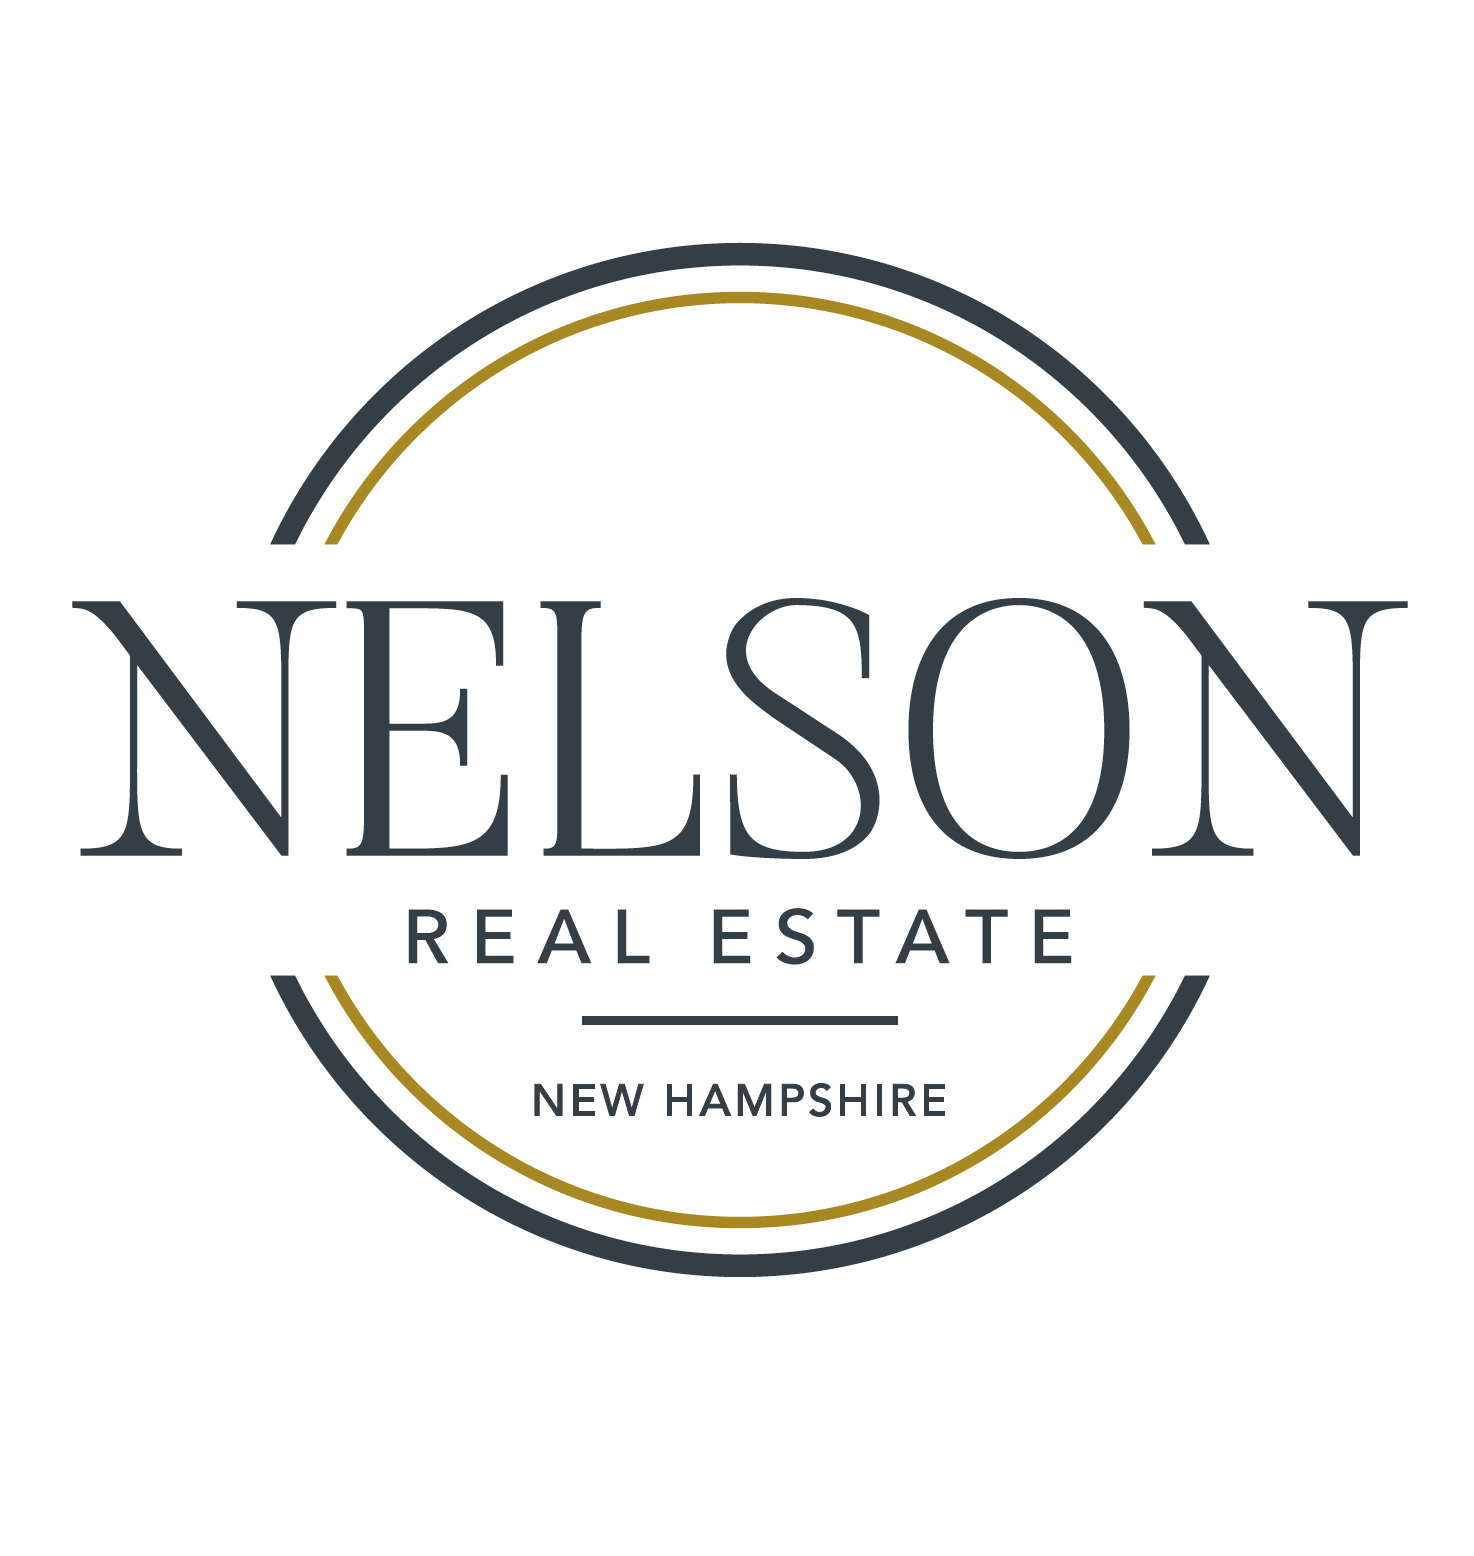 Nelson Real Estate